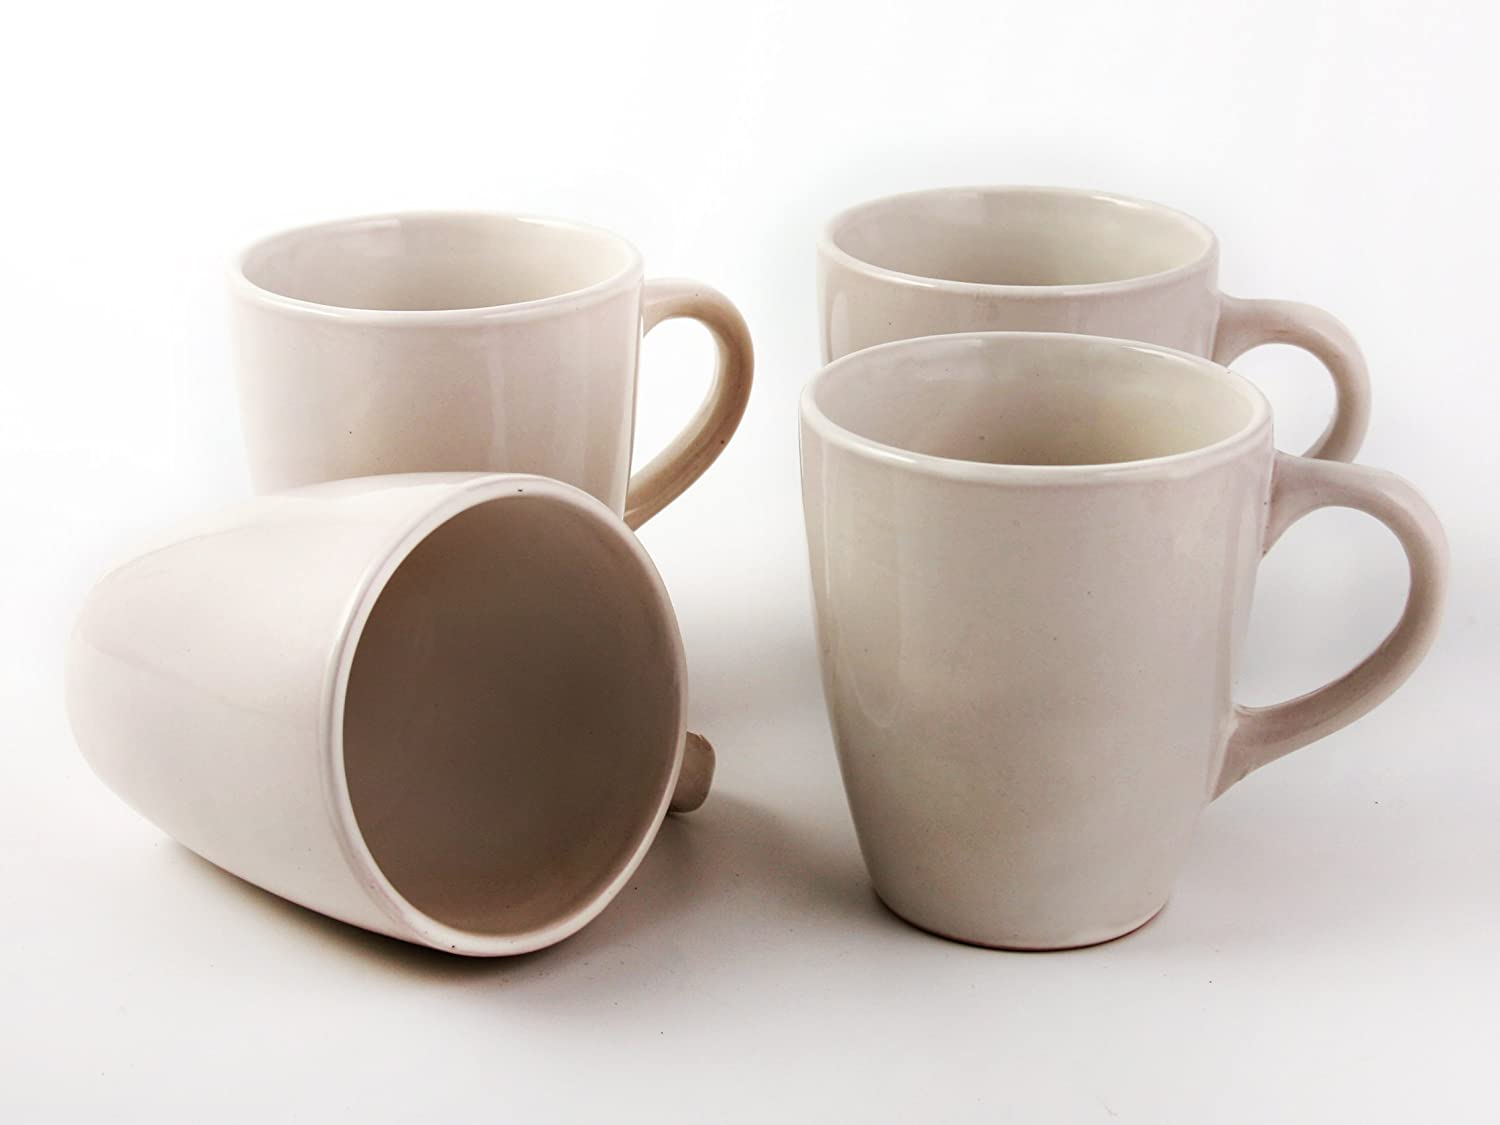 4 Gorgeous Large Ceramic Specialty Coffee Mugs with Espresso Cappuccino Designs